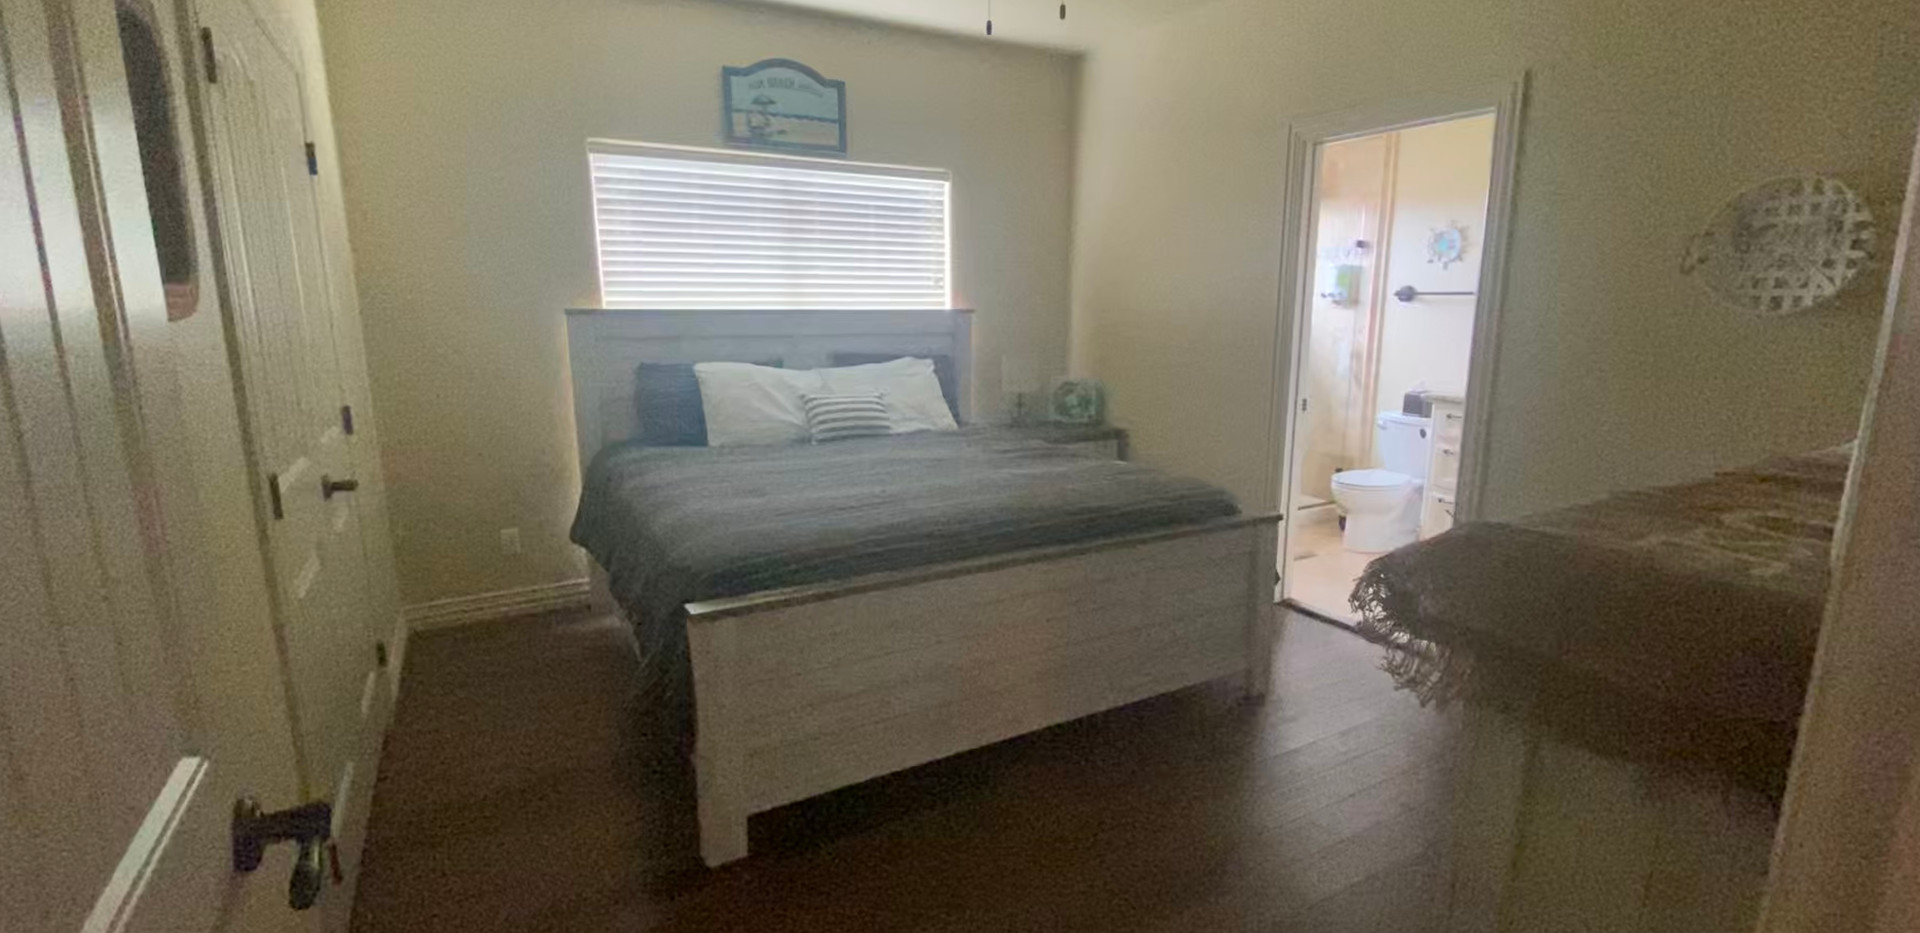 Master Bedroom, king size bed with private bathroom